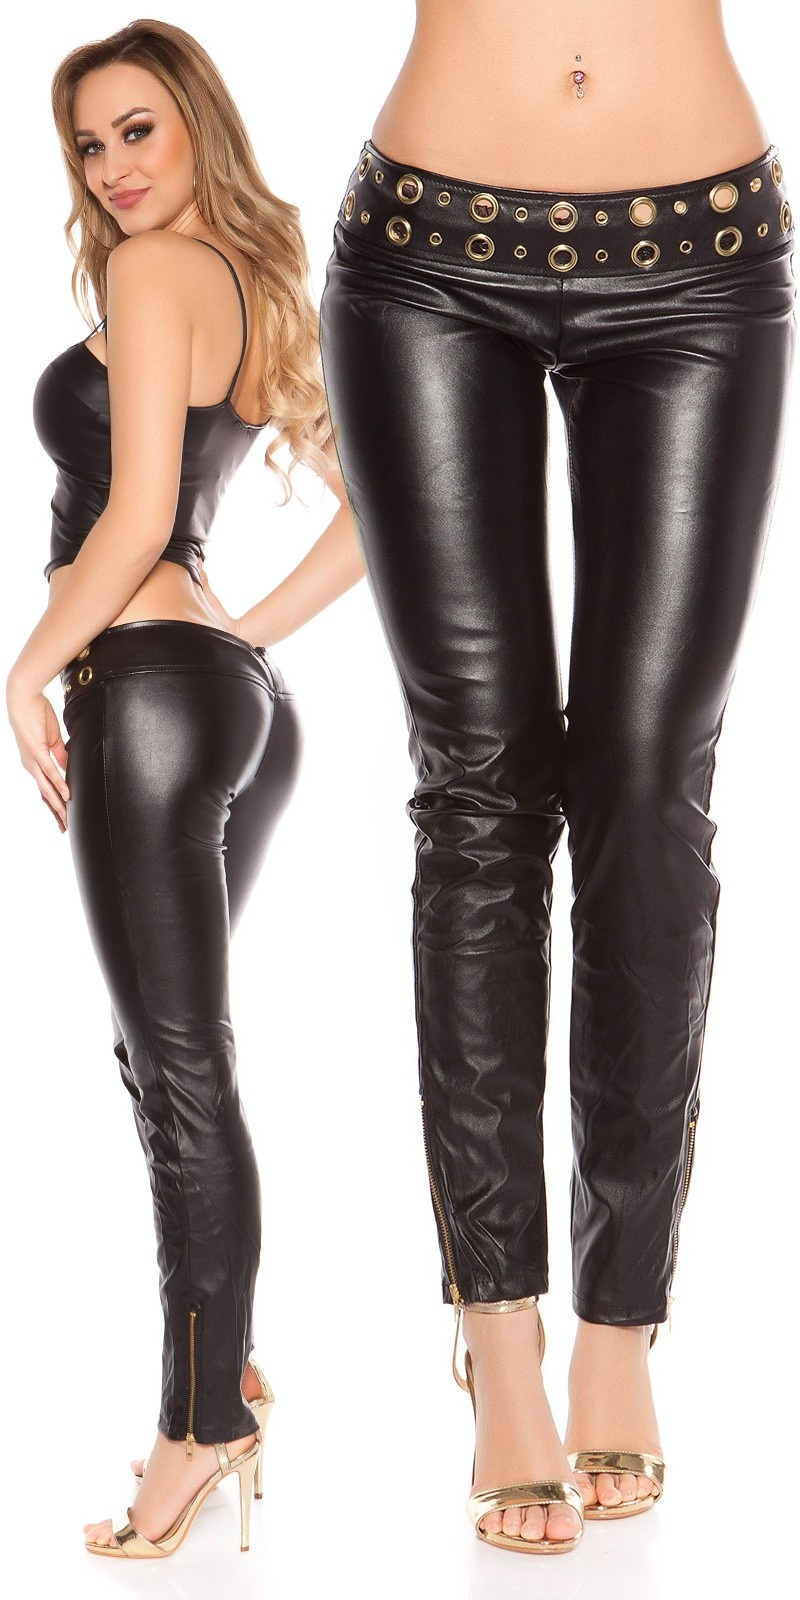 Sexy lowcut-Skinny-Pants in leatherlook with studs Black